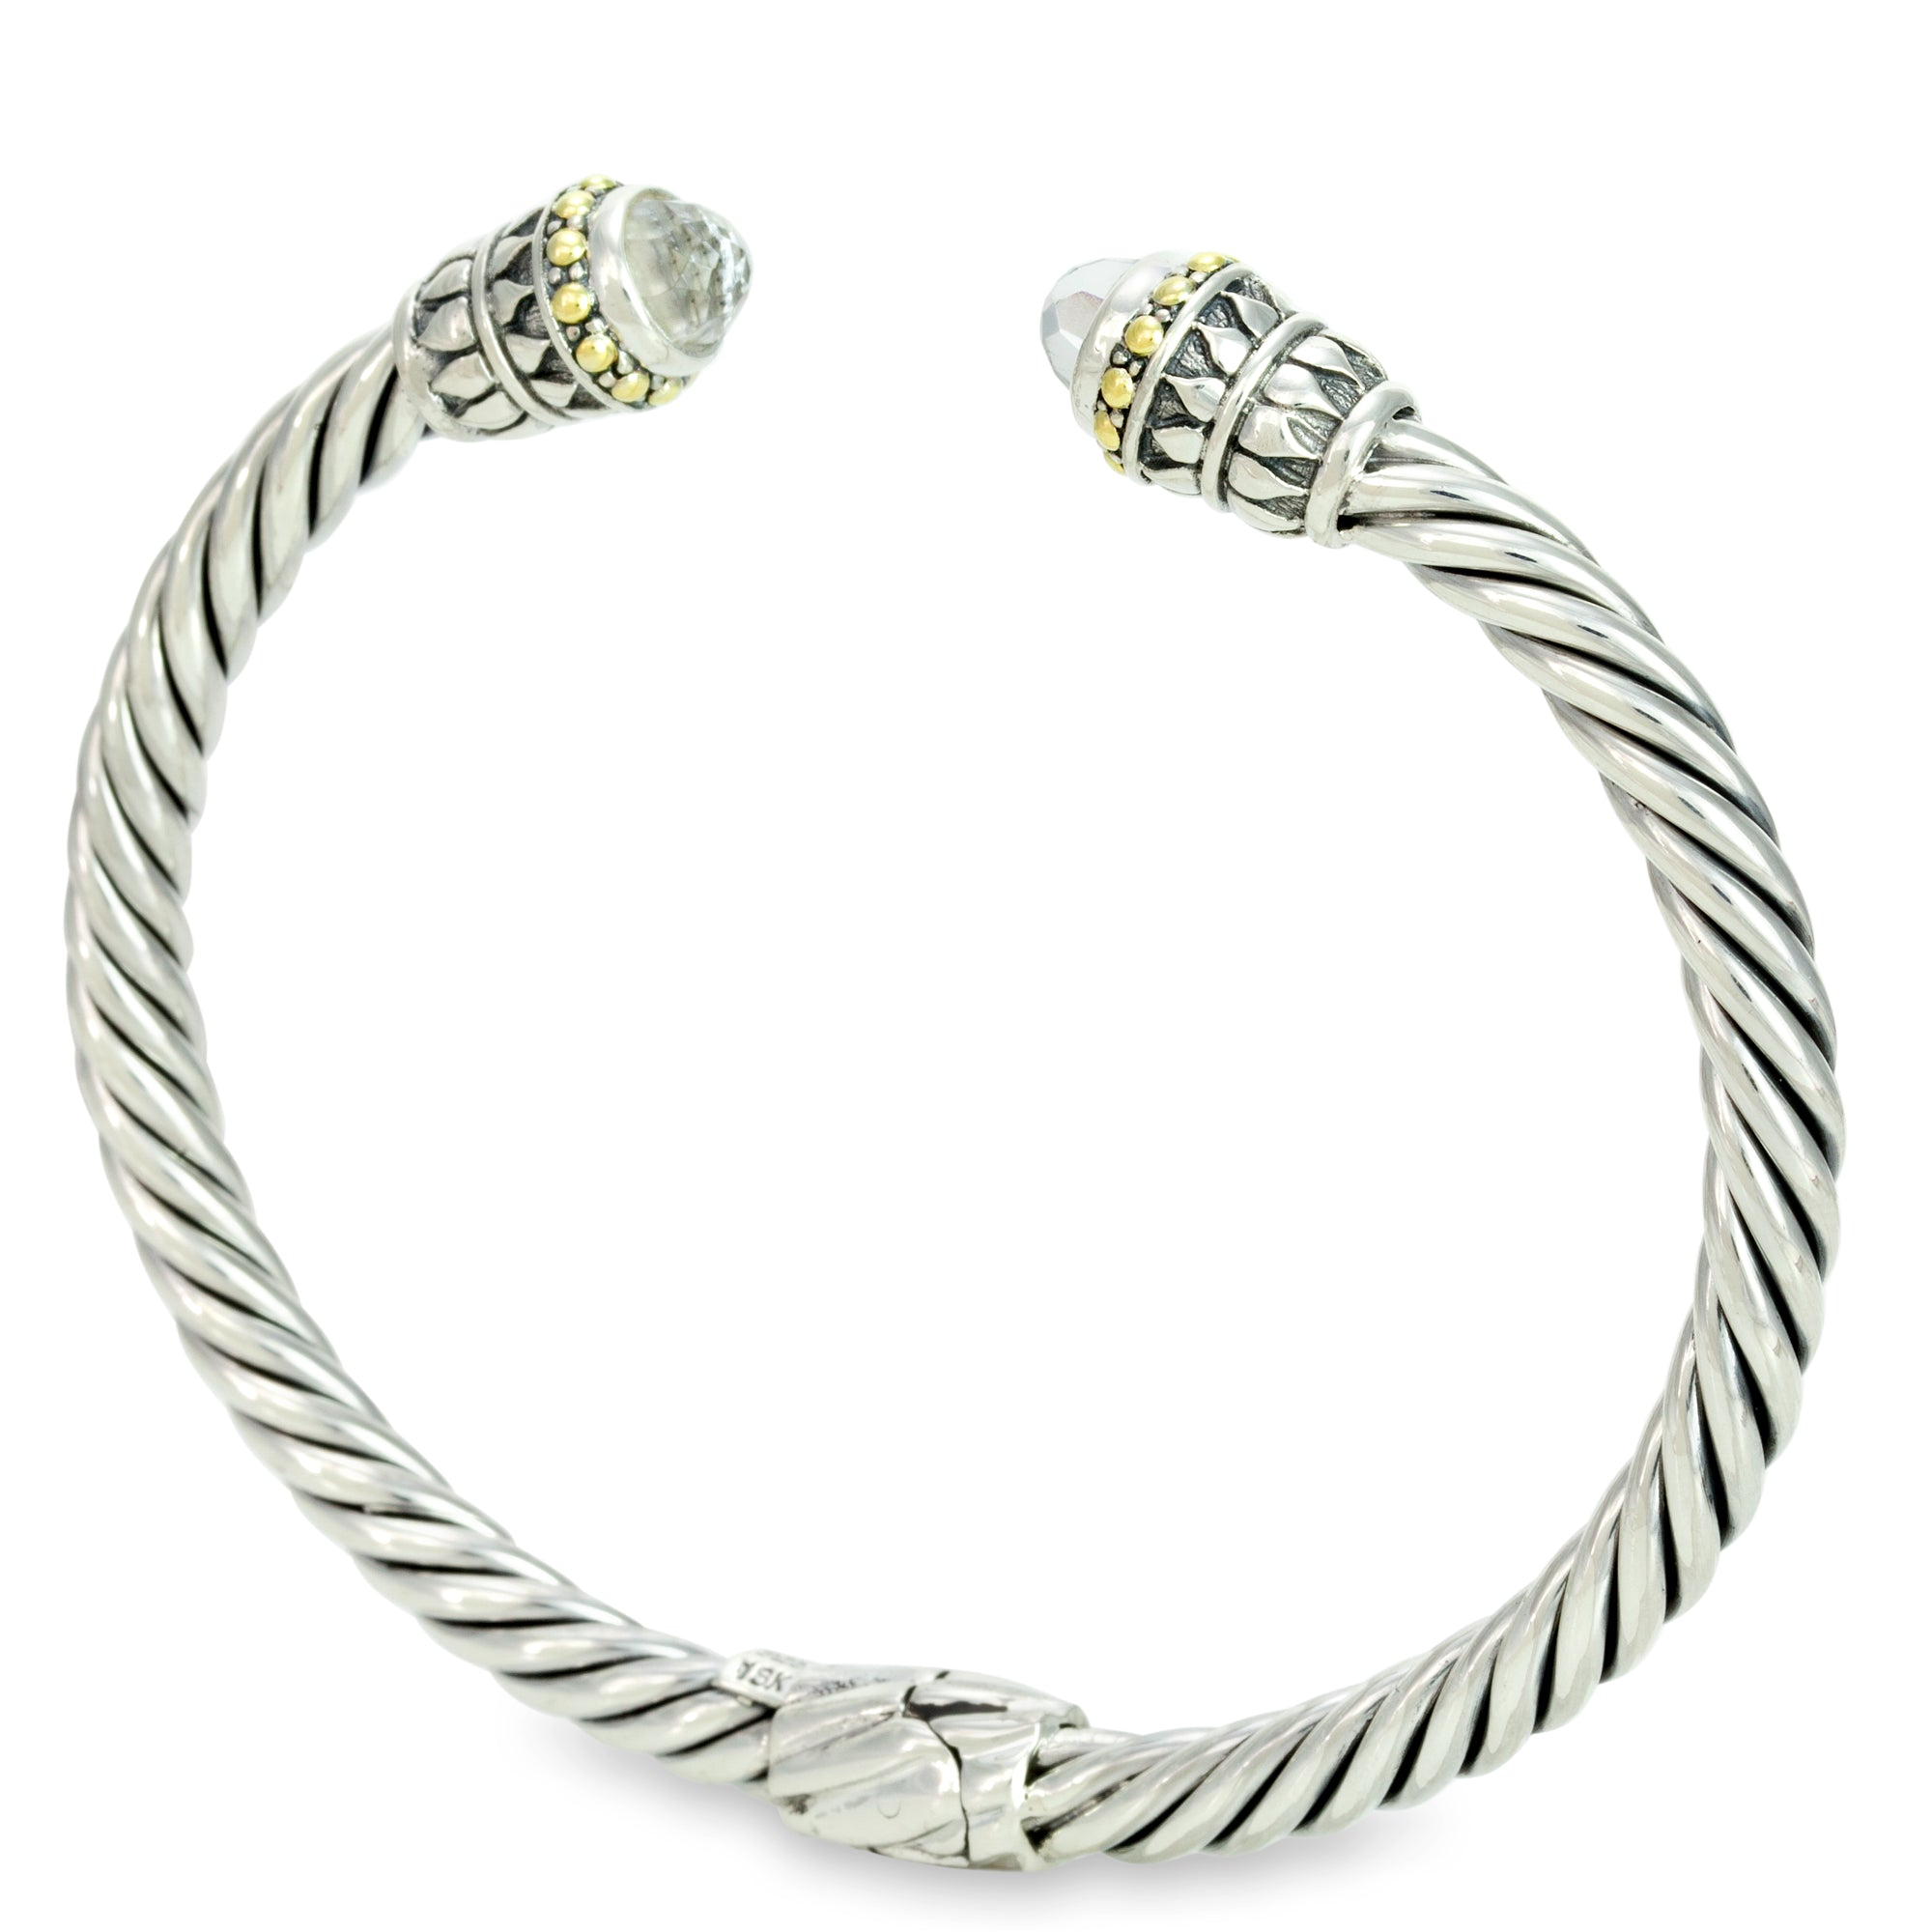 White Topaz Sterling Silver Twisted Cable Bangle with 18K Gold Accents